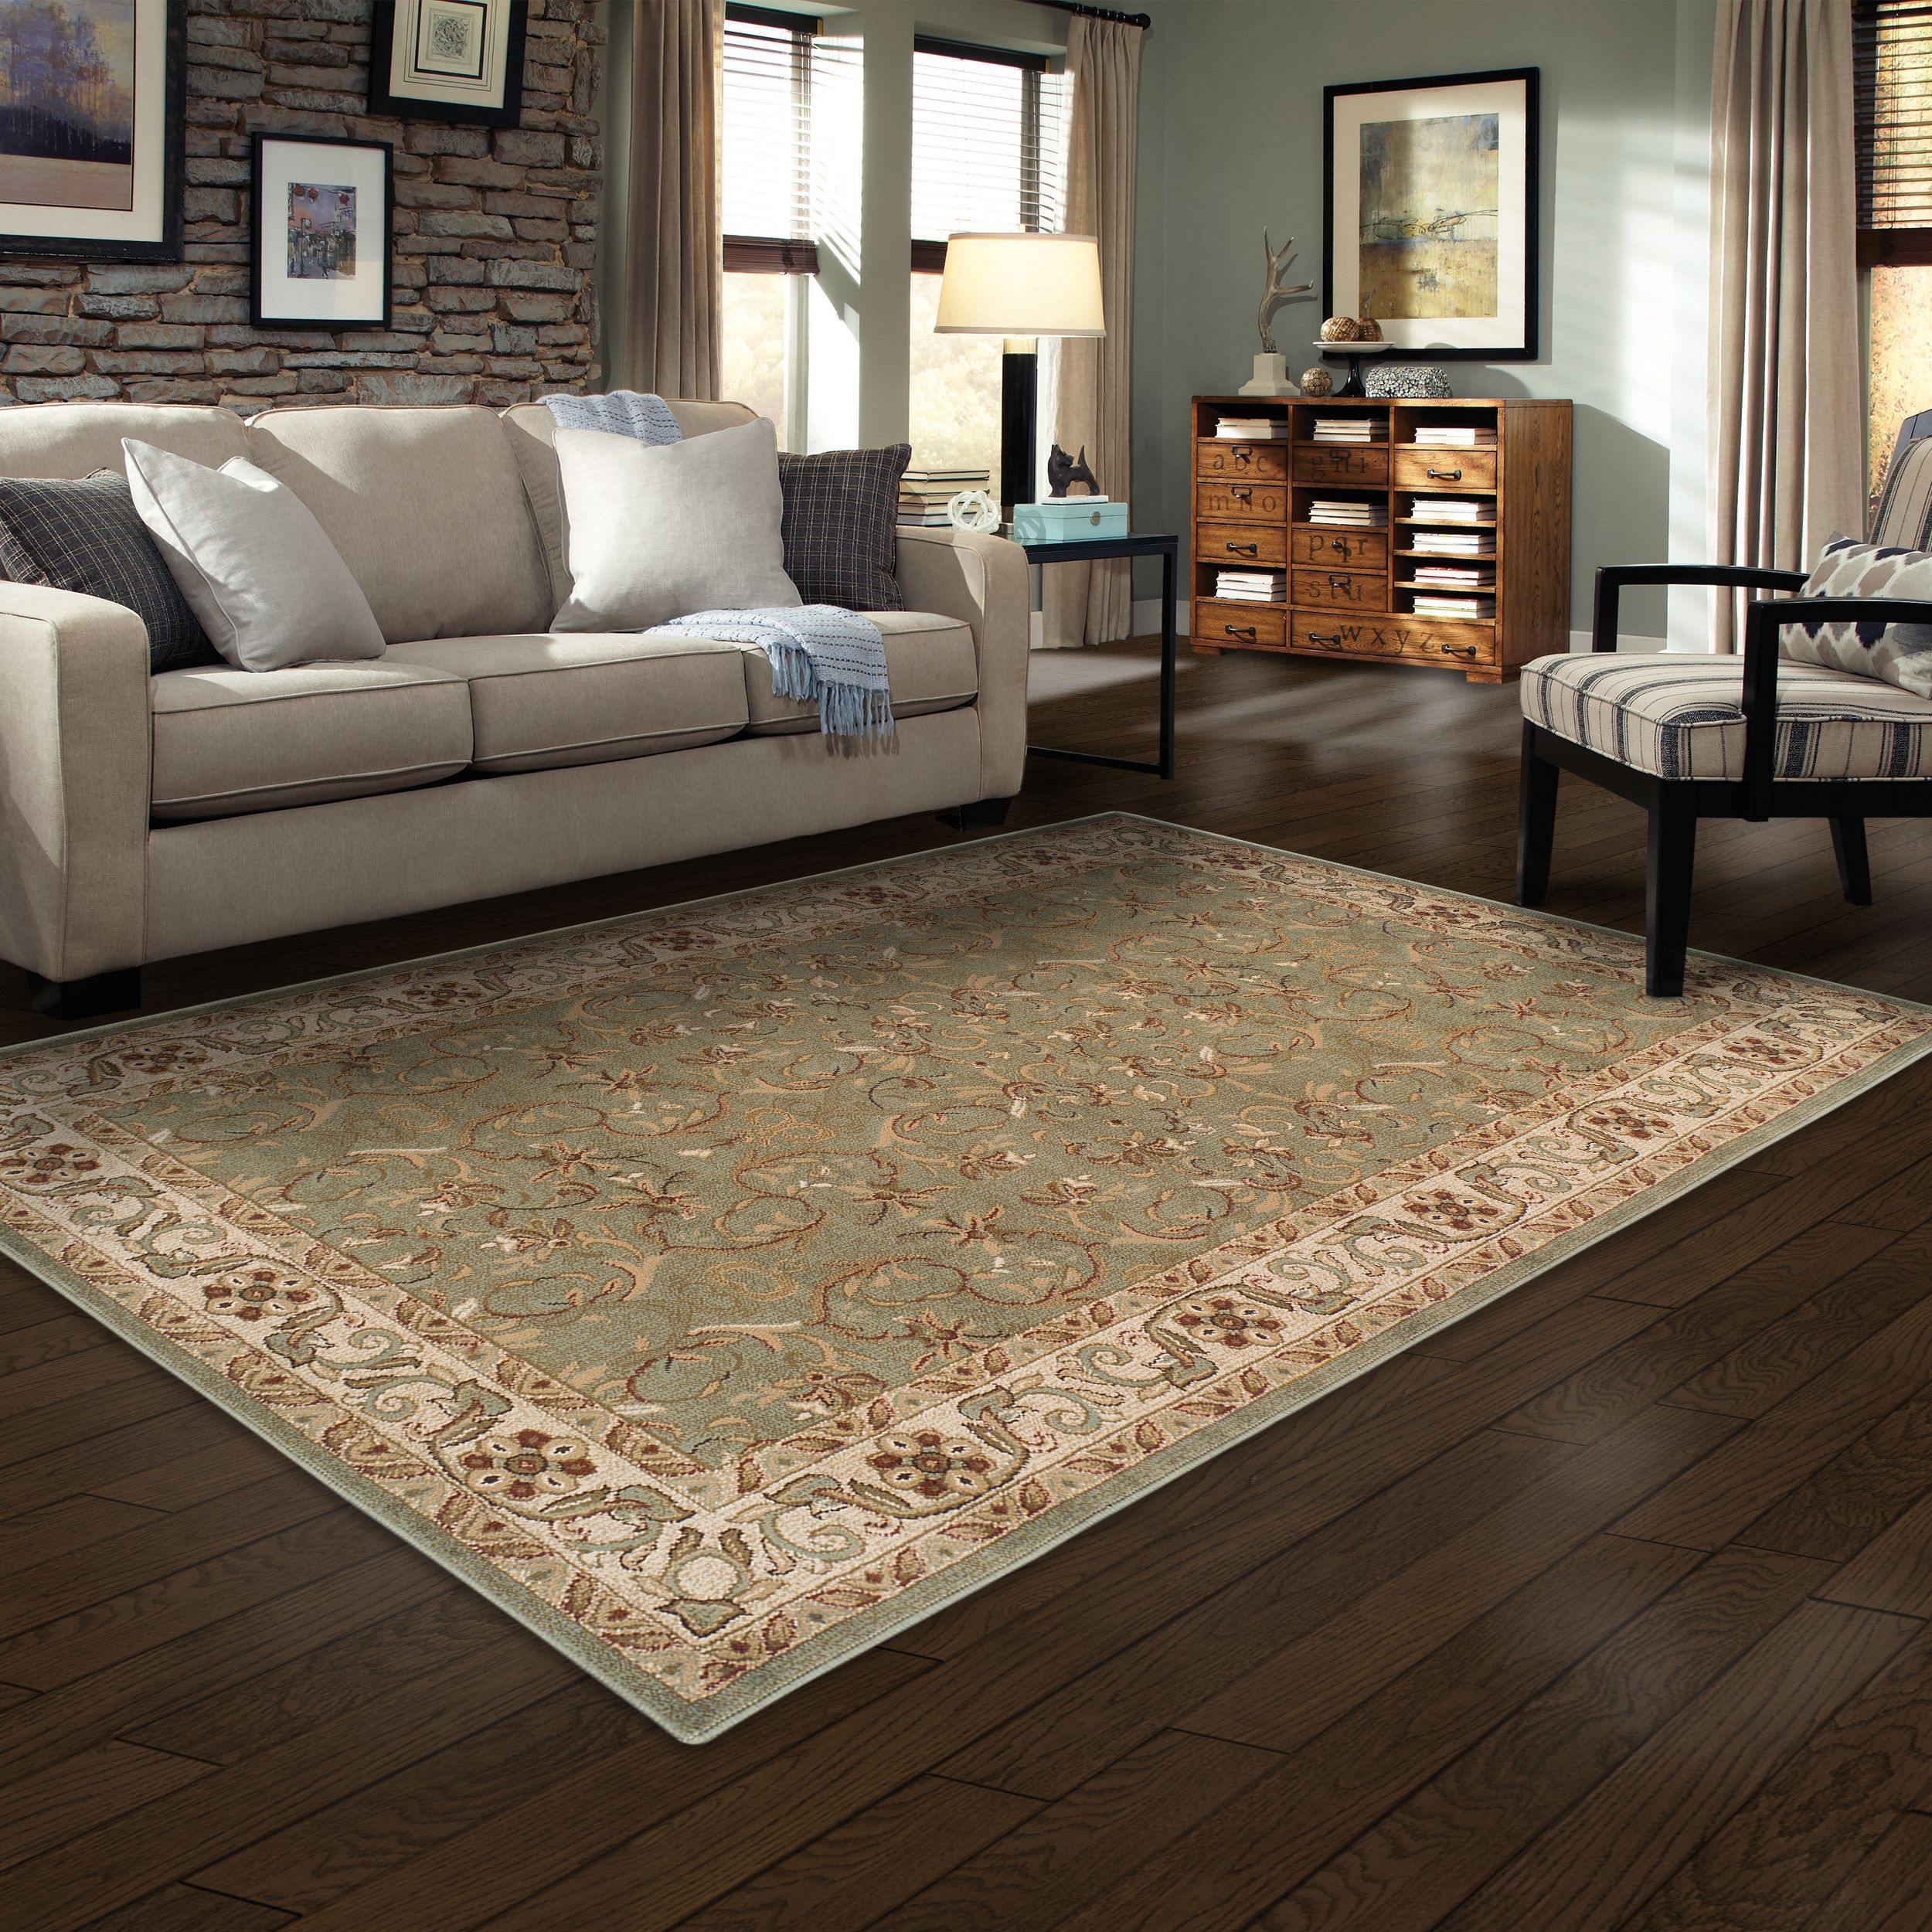 Superior Elegant Heritage Collection with 10mm Pile and Jute Backing, Moisture Resistant and Anti-Static Indoor Area Rug